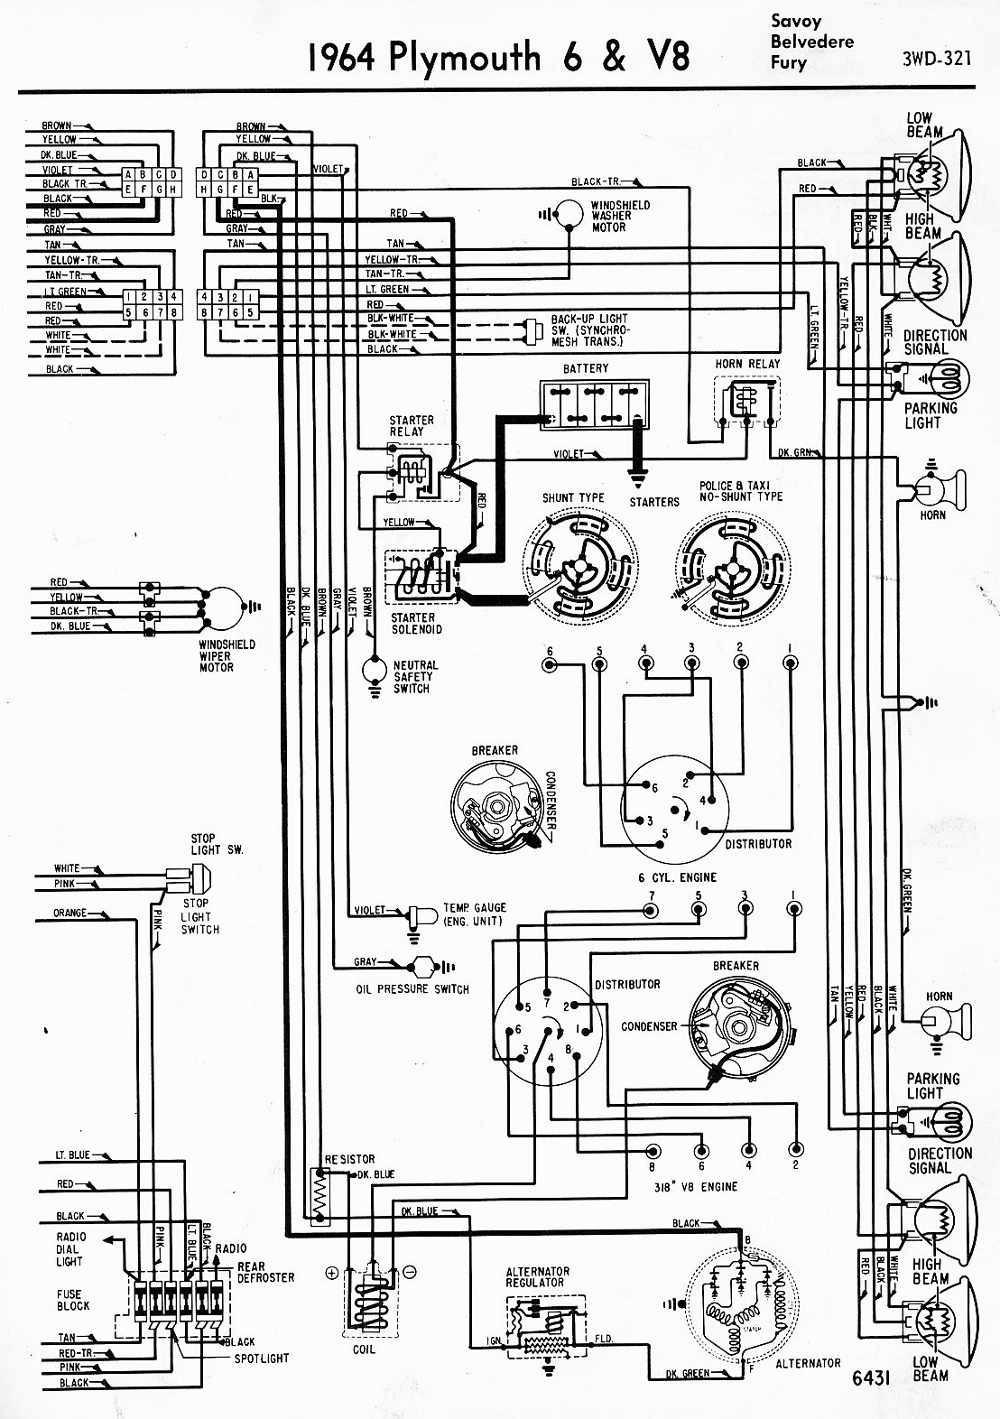 1964 plymouth sport fury wiring diagram 1969 plymouth